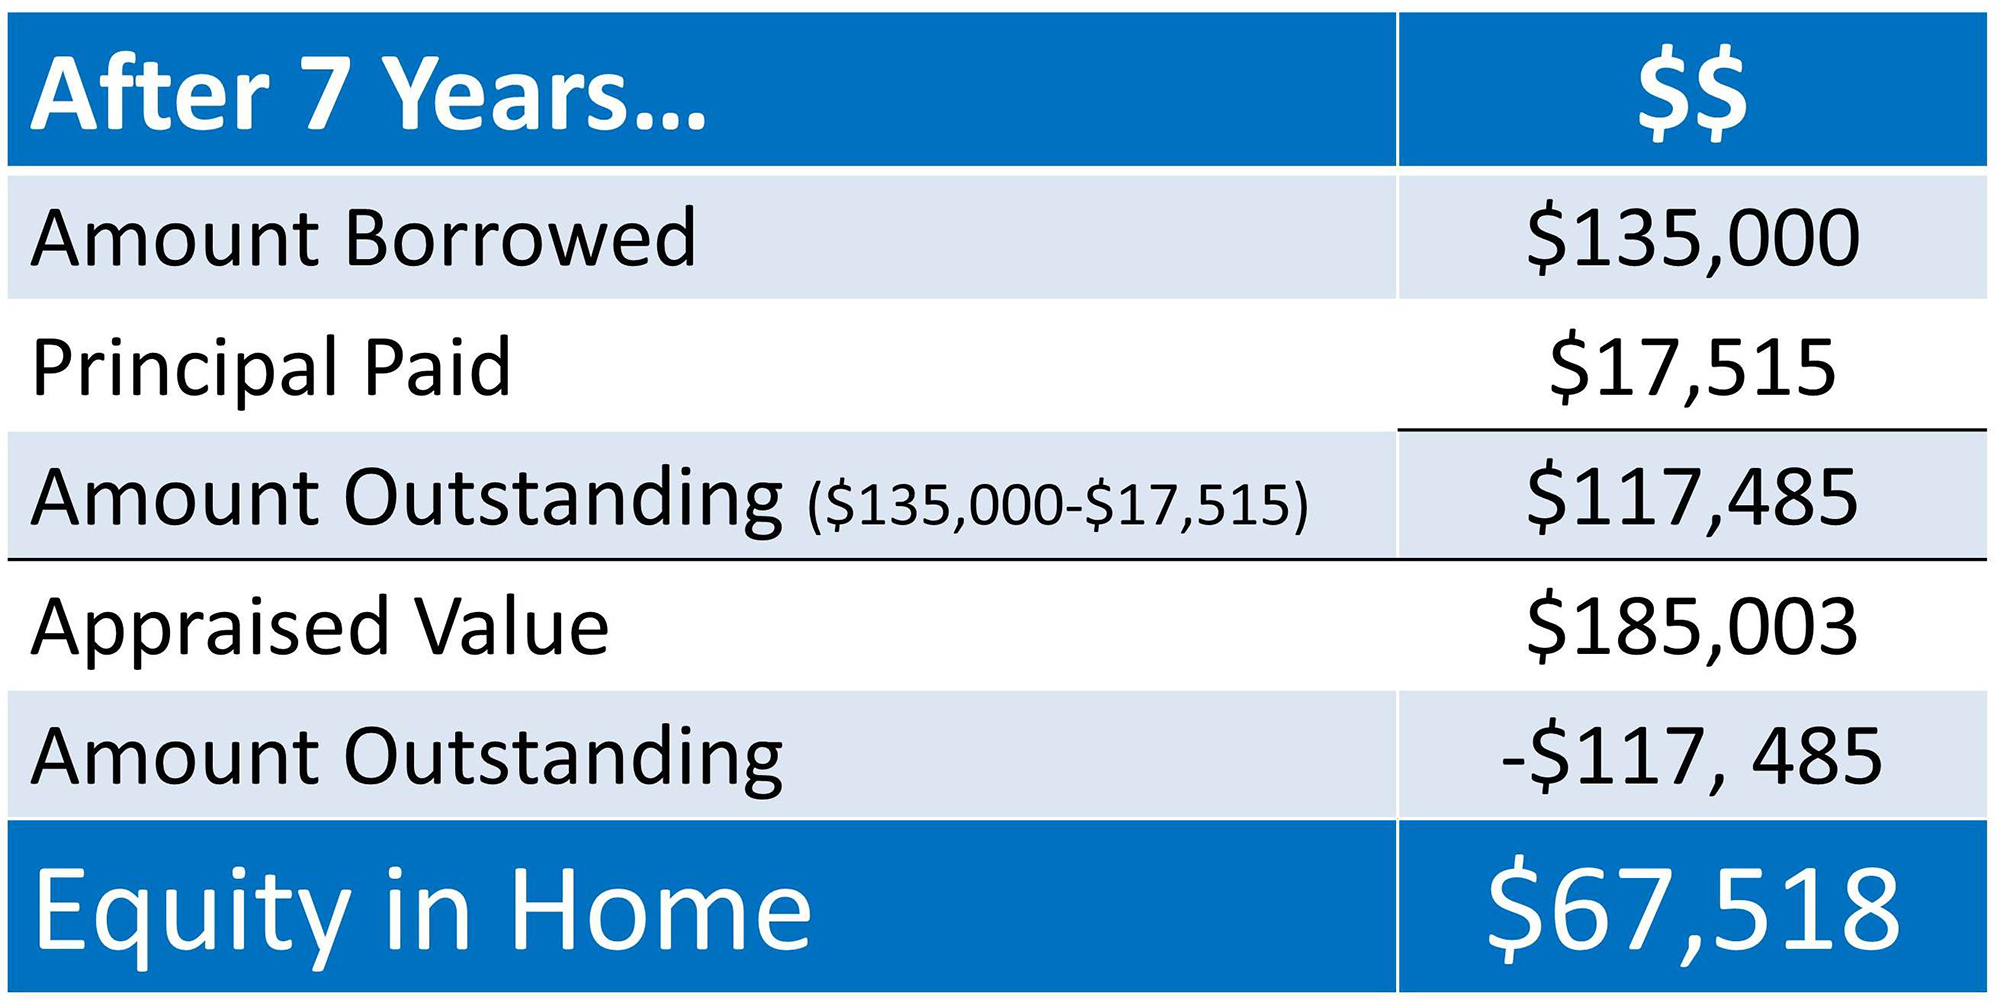 Average Monthly Payment  Home Equity Loan